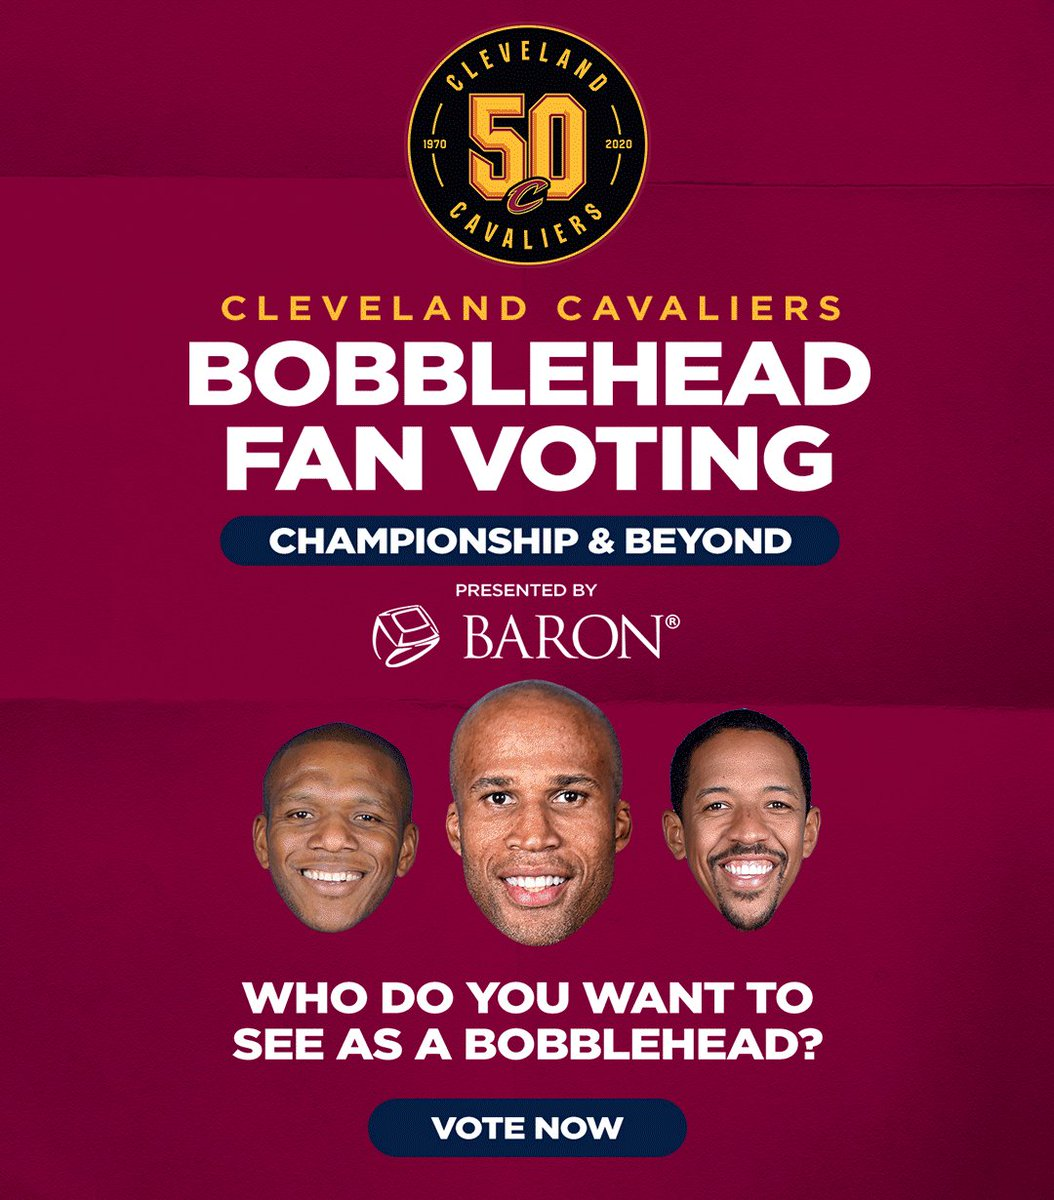 """YOU'RE ON THE CLOCK.⏰  Today is the LAST DAY to vote for our """"Championship Era & Beyond"""" bobblehead, presented by @BaronRings.  VOTE NOW: http://on.nba.com/33rKToo  #Cavs50"""